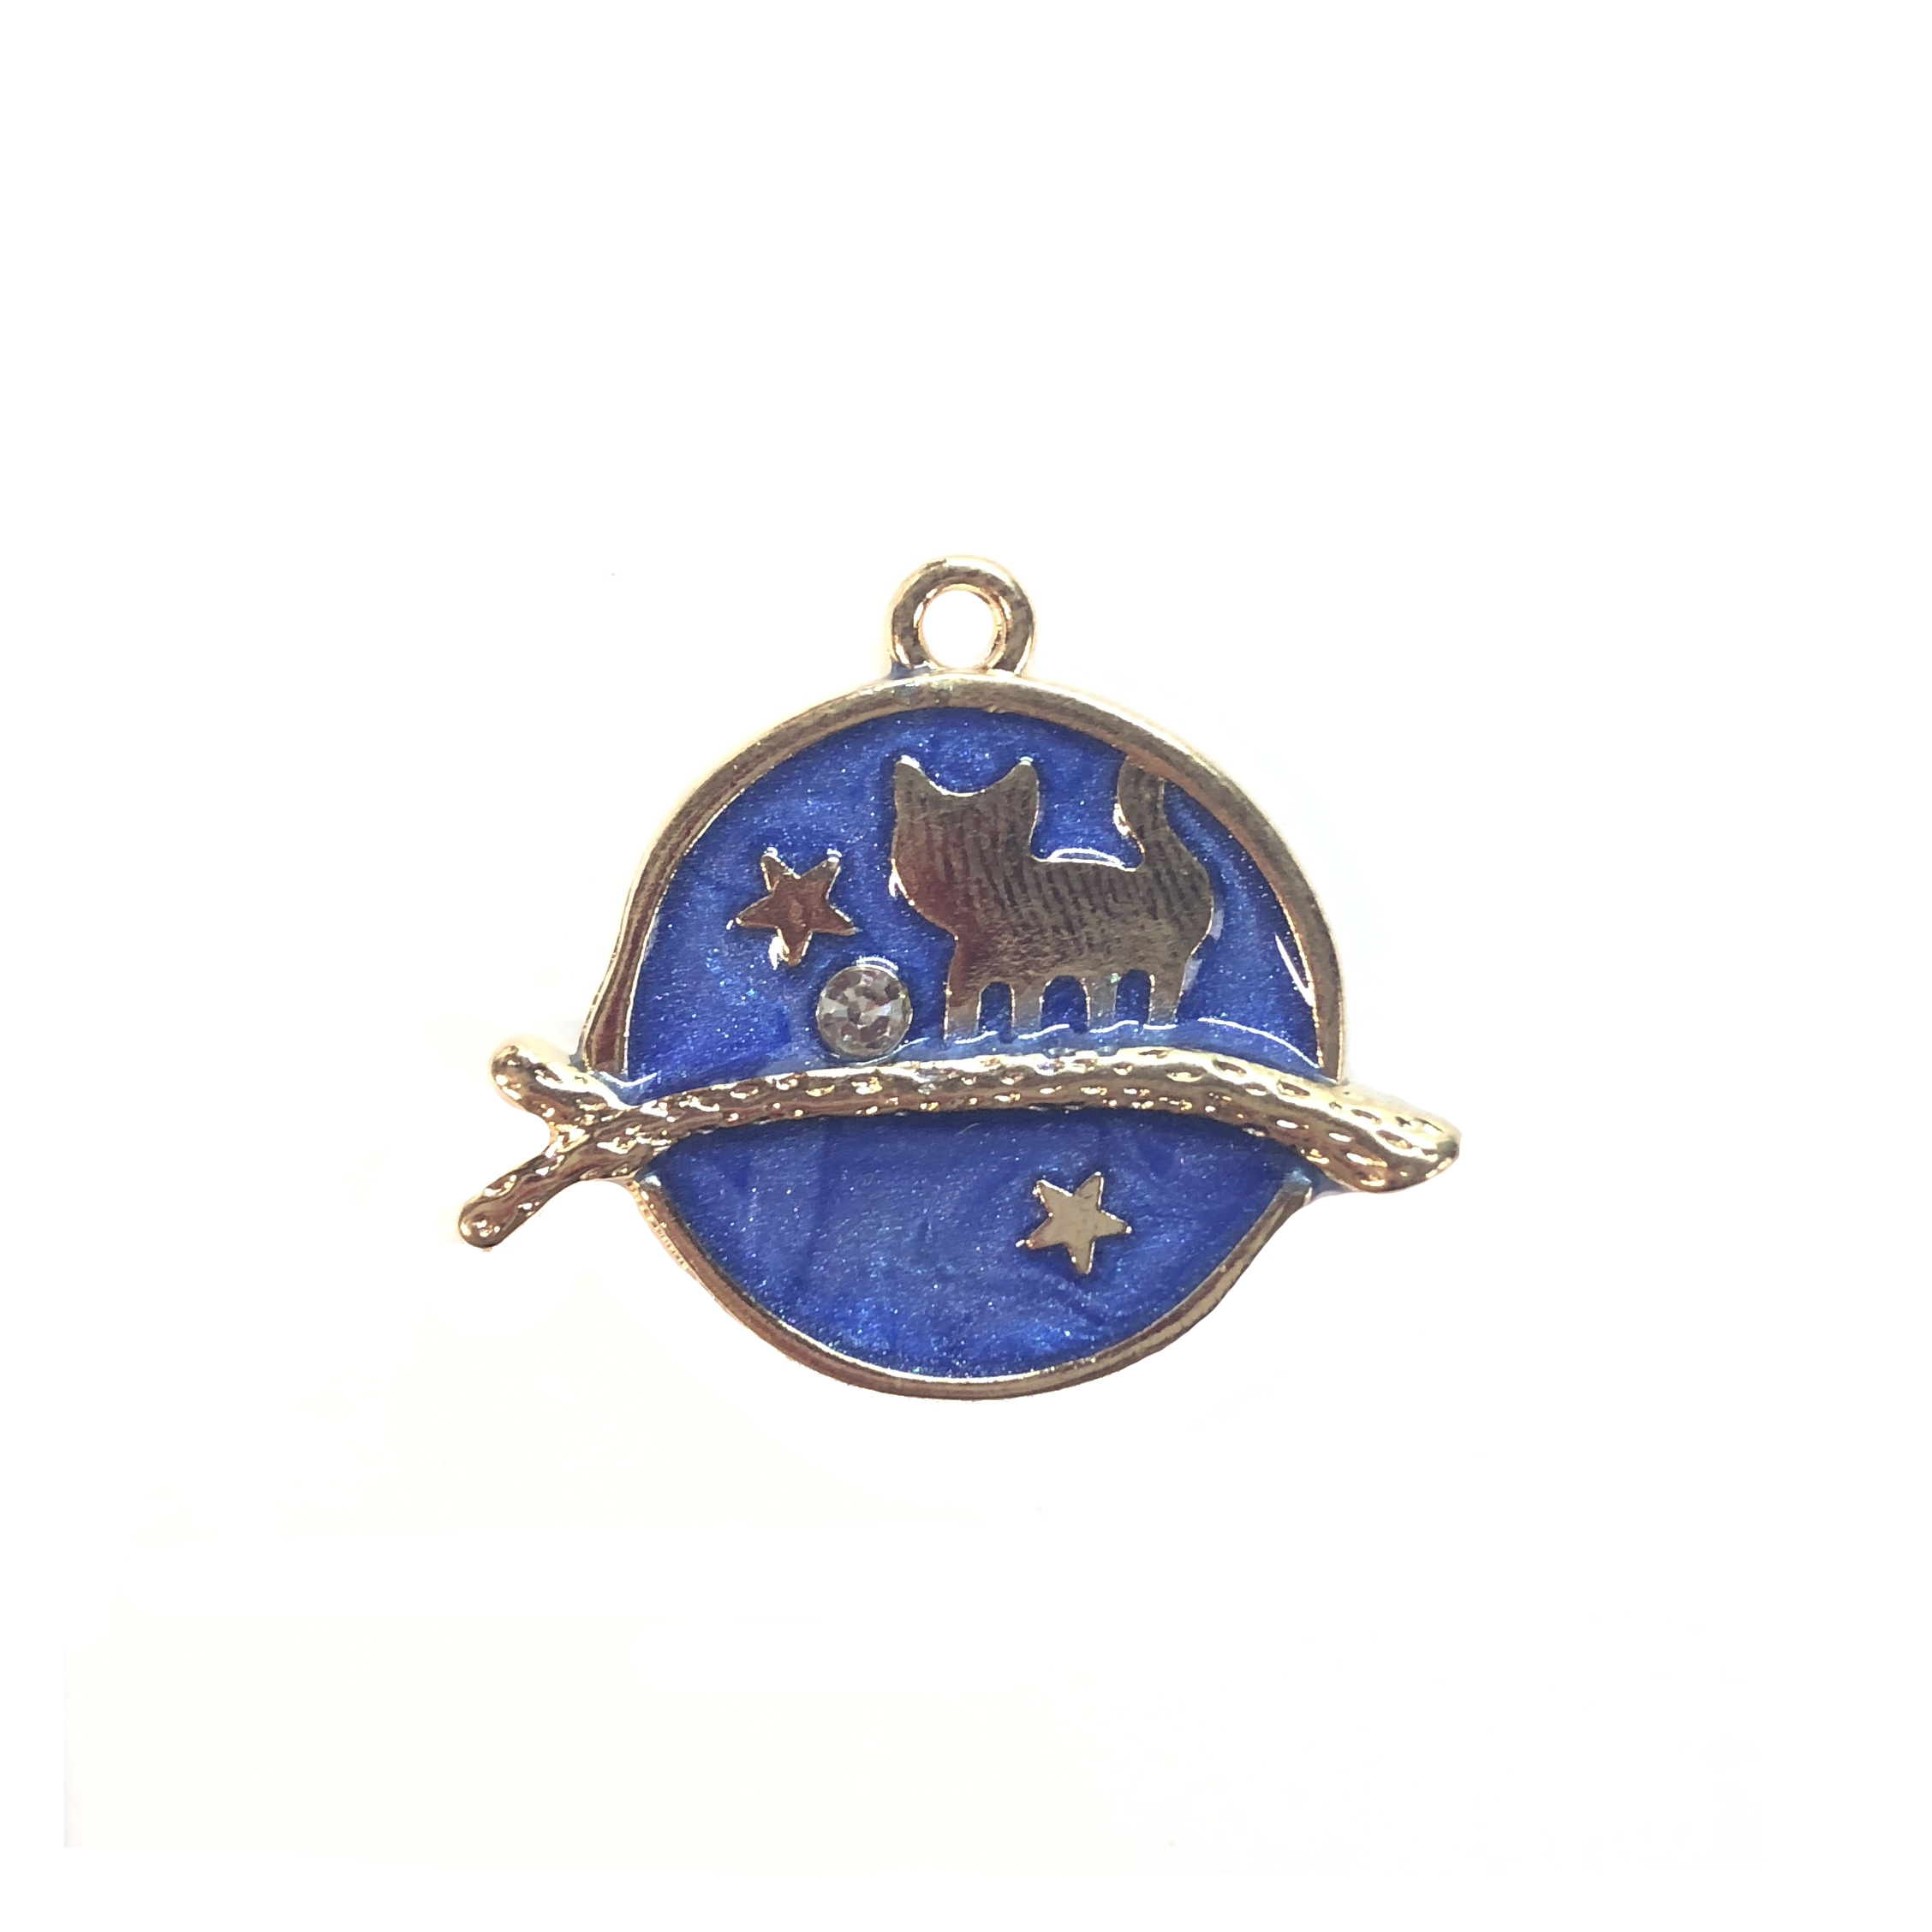 Cat Charm, blue enamel, gold plated, 08294, 26 x 22mm, cast zinc, B'sue Boutiques, jewelry making, jewelry supplies, jewelry findings, animals, pets, kitties, kitten, kitty, cats, charms, pendant, gold charm